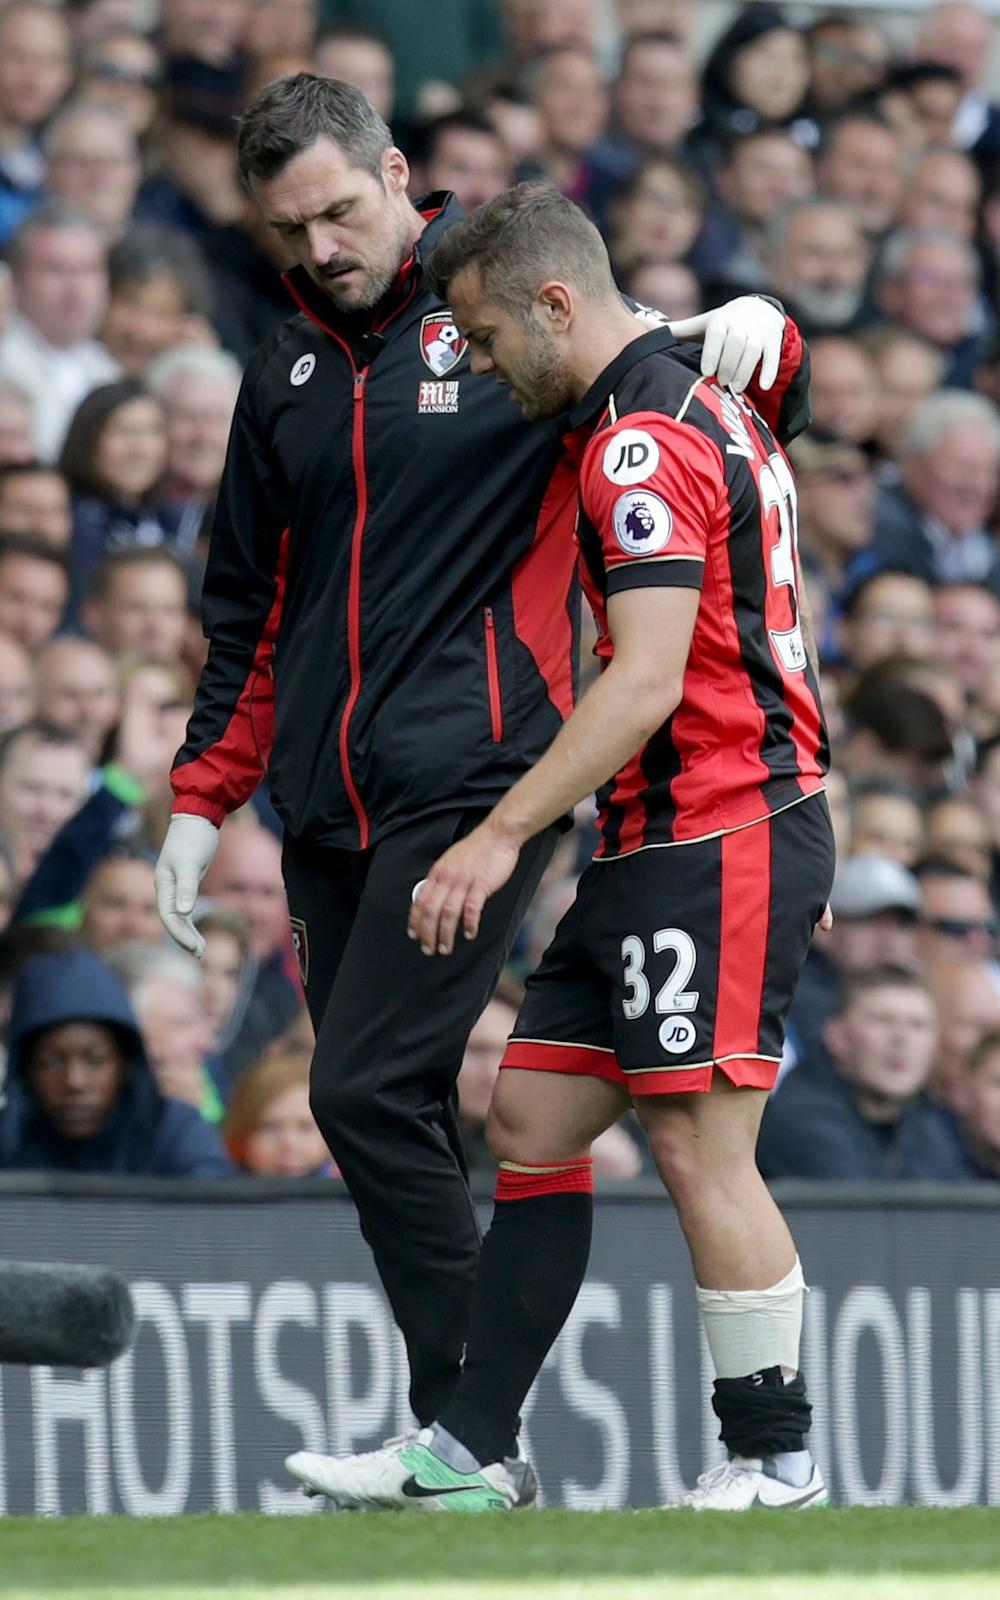 Jack Wilshere of AFC Bournemouth hobbles off the pitch injured Tottenham Hotspur v AFC Bournemouth - Credit: Rex